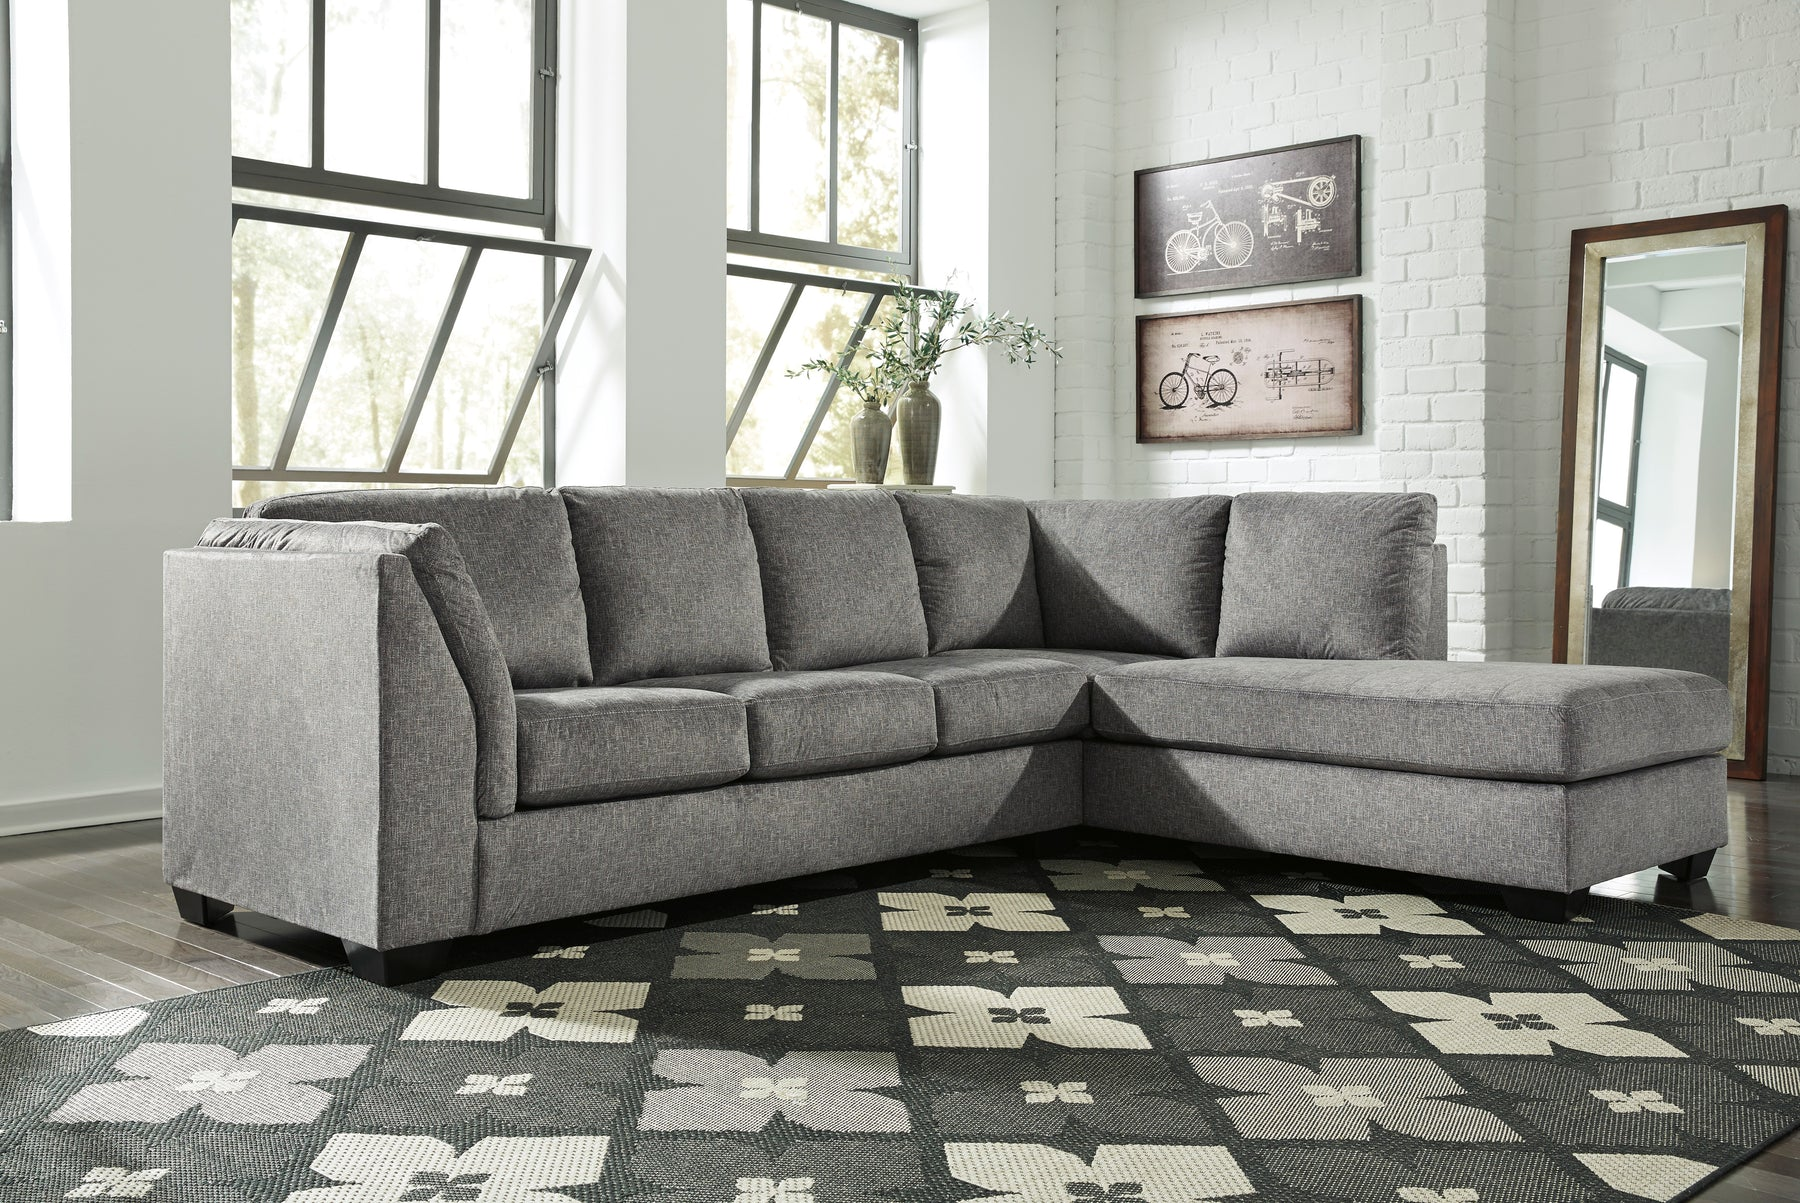 Benchcraft Belcastel Fabric Solid 2-Piece Sectional With Raf Chaise And Sleeper